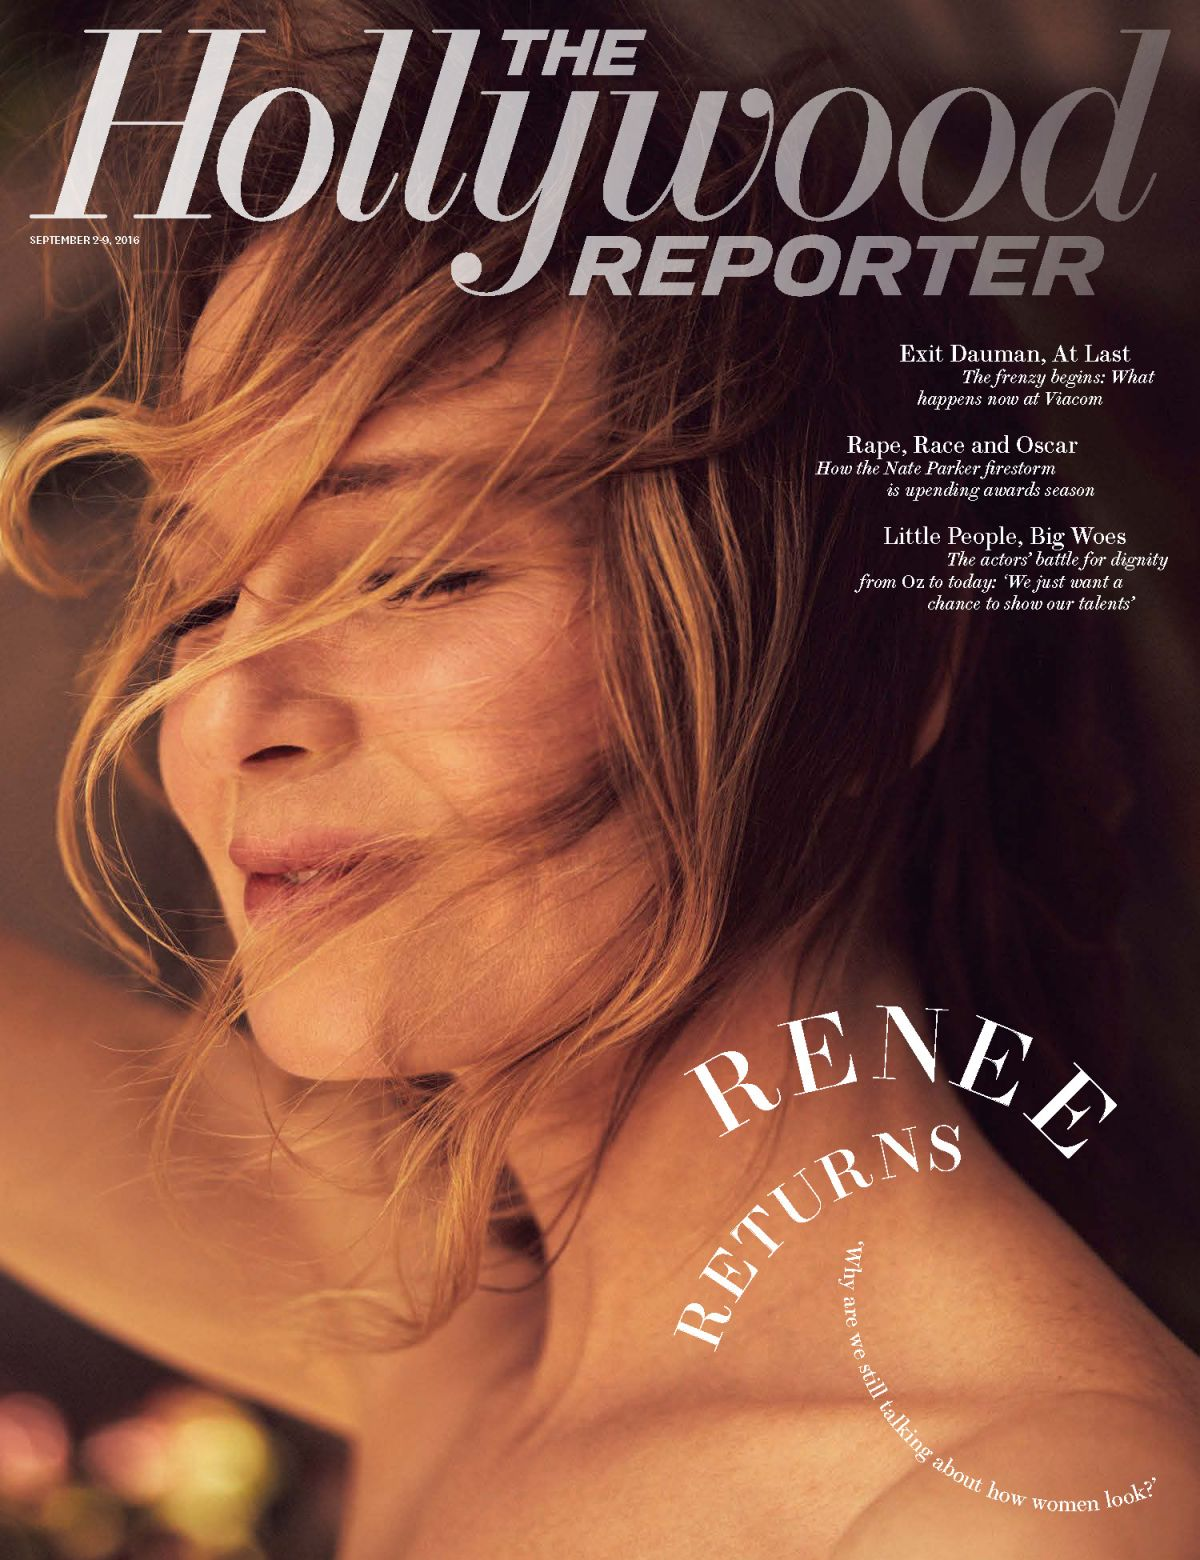 Renee Zellweger PhotoShoot For The Hollywood Reporter September 2016